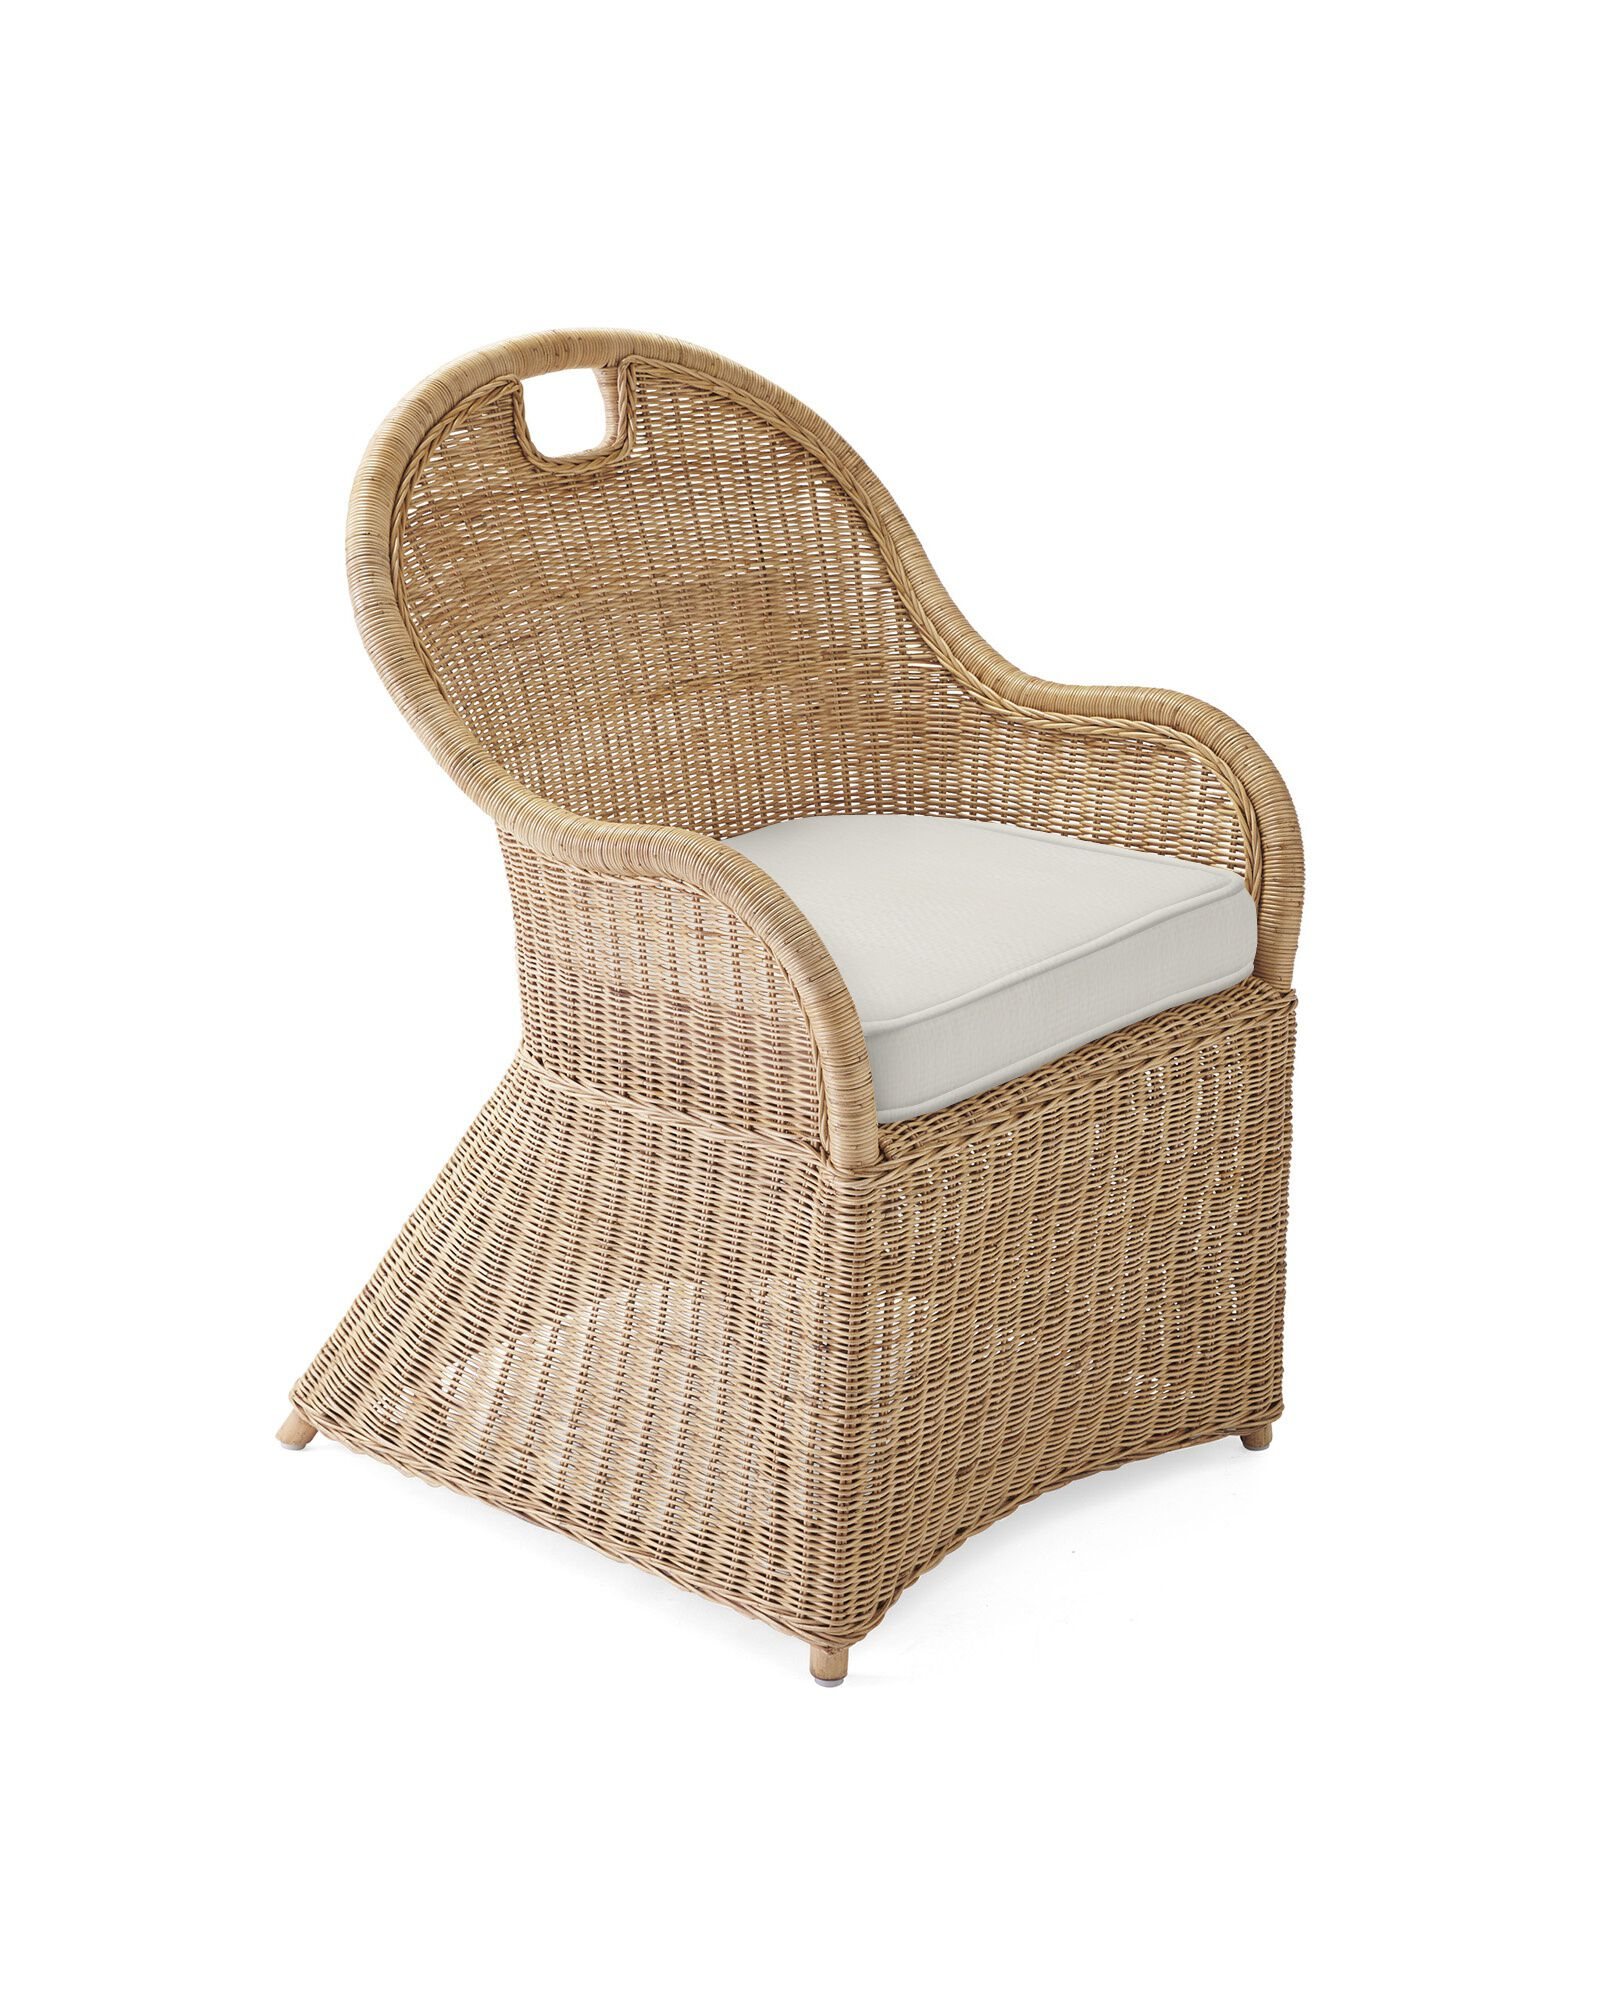 Cushion Cover for Shore Dining Chair & Counter Stool, Perennials Basketweave Chalk